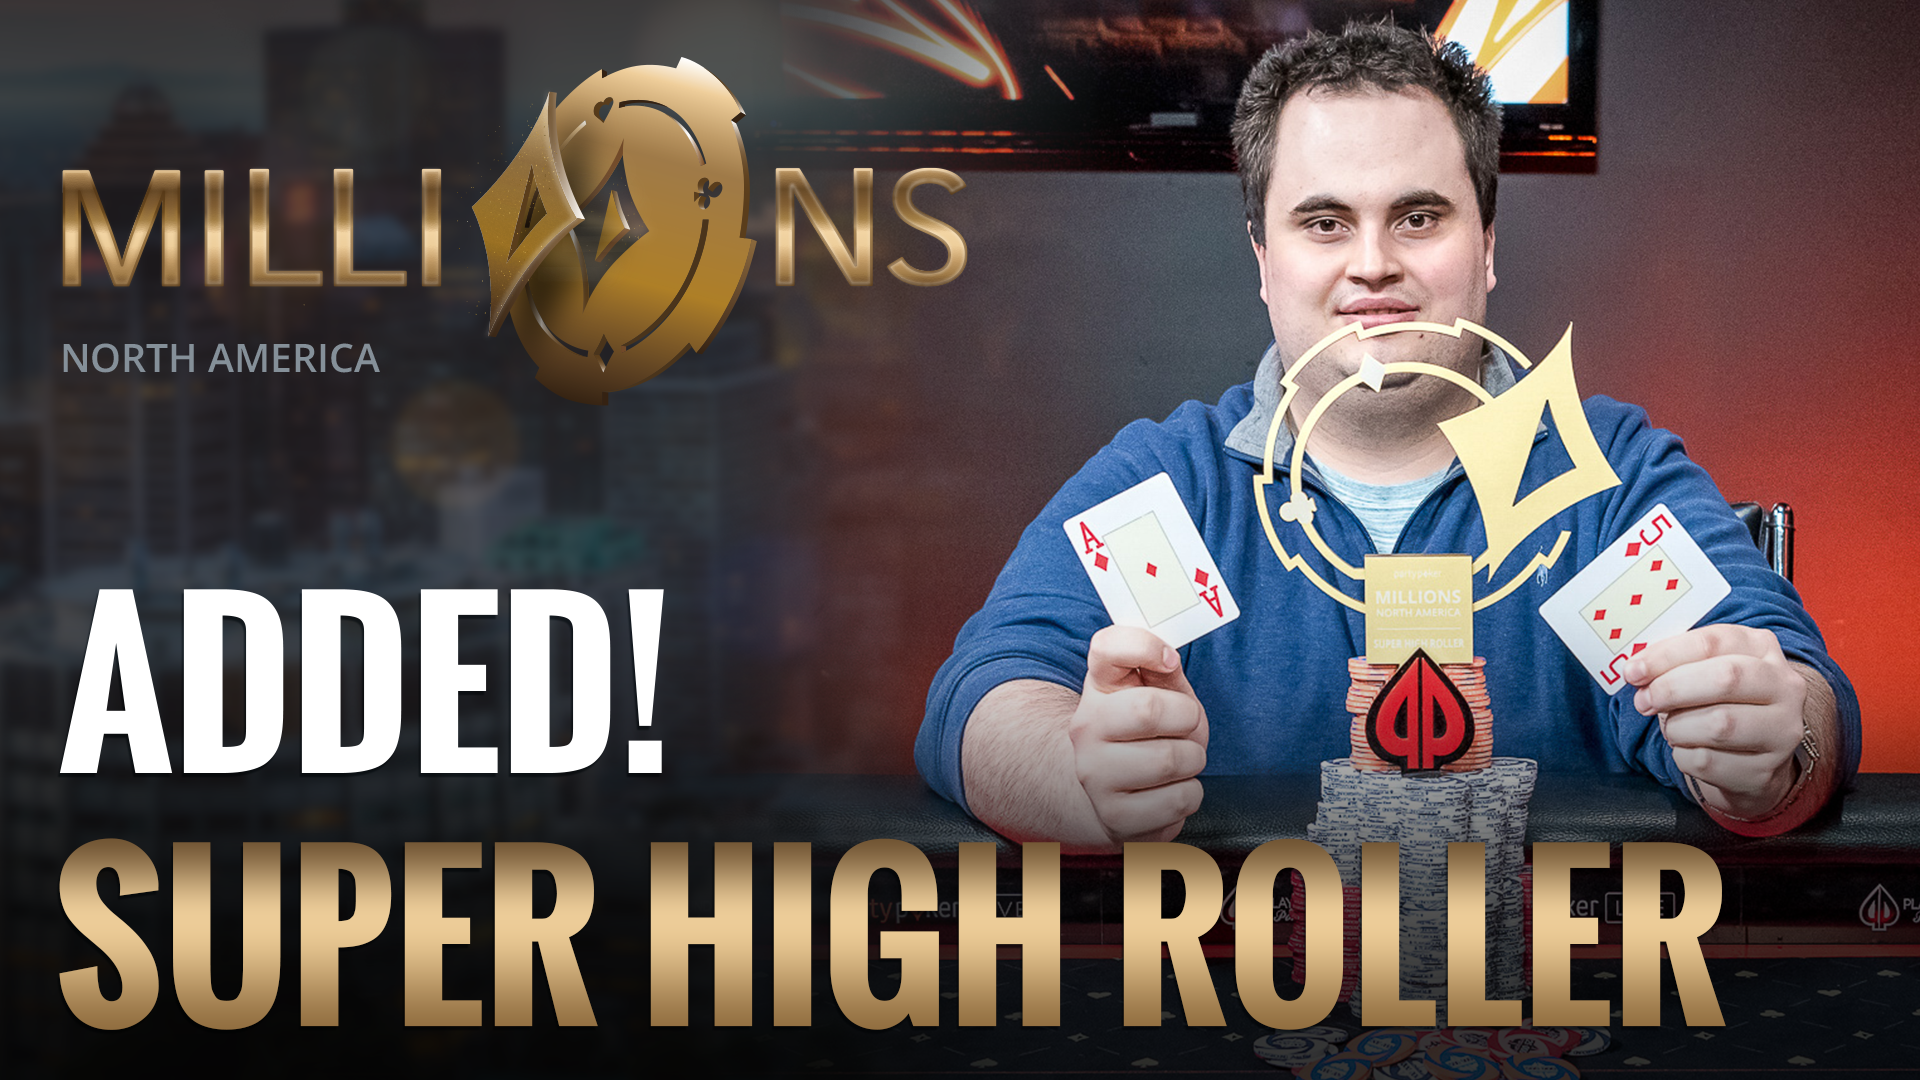 $25K Super High Roller Added to the MILLIONS North America Schedule